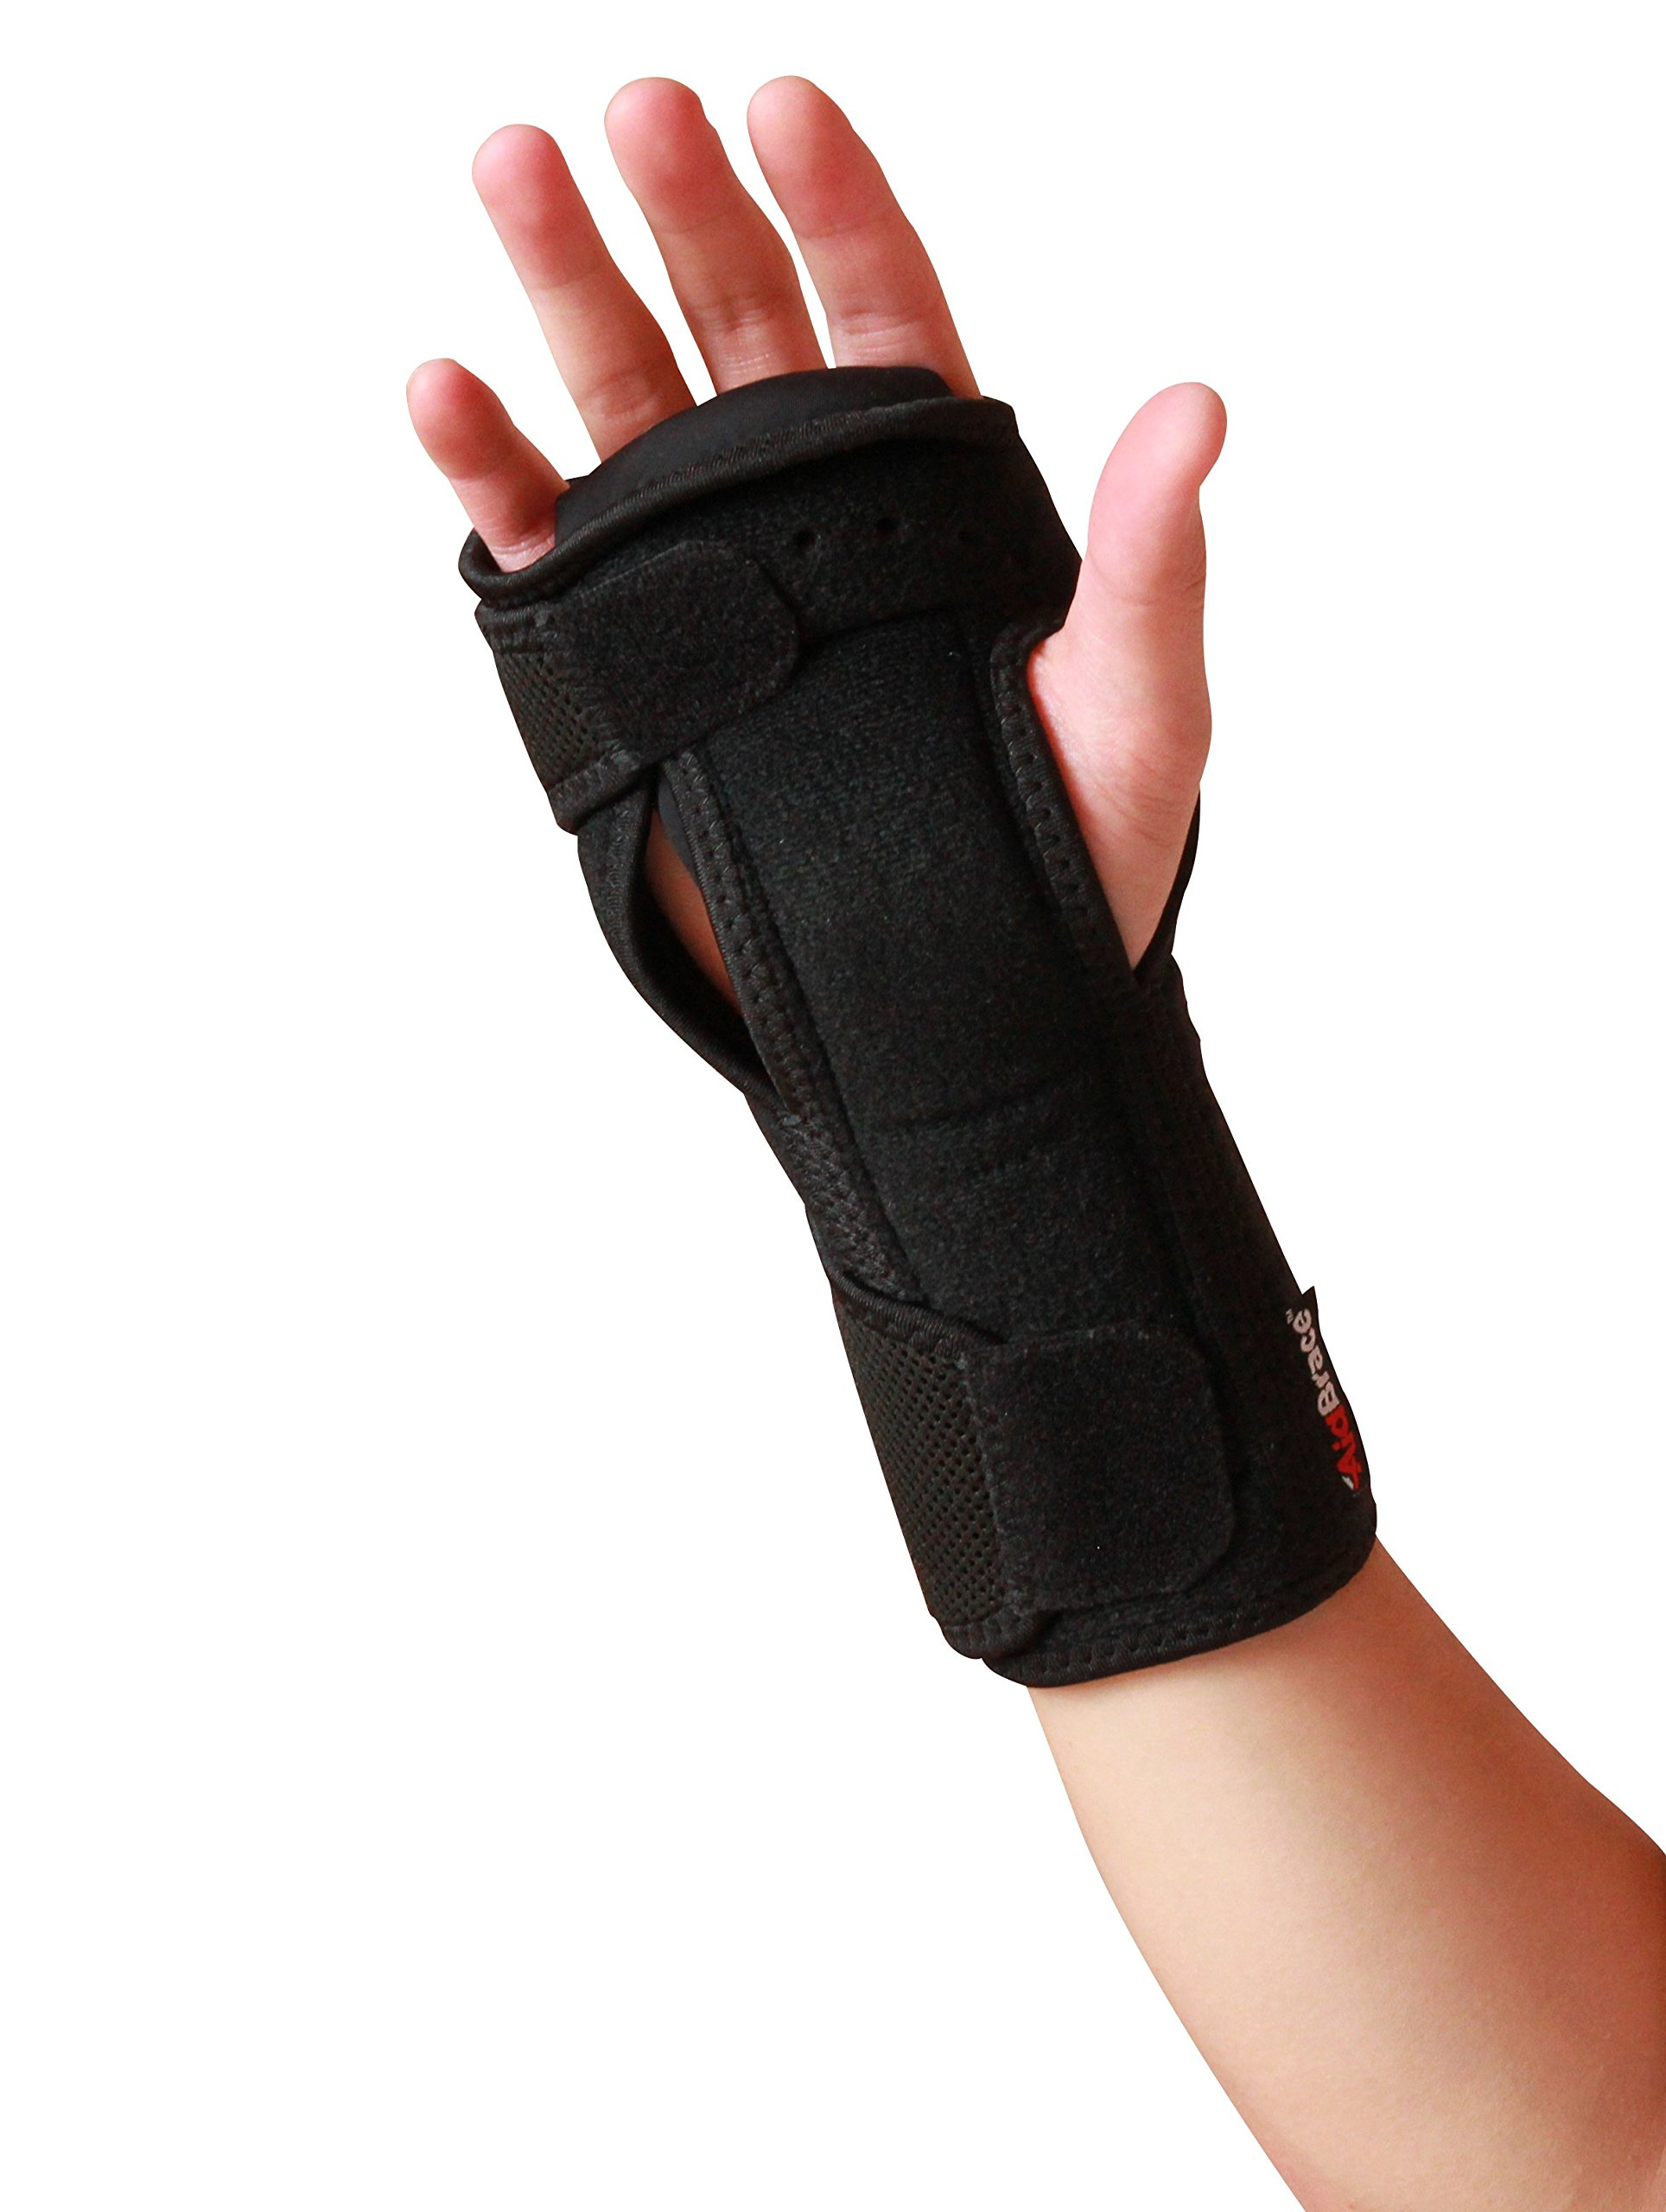 AidBrace Night Wrist Sleep Support Brace - Fits Both Hands - Cushioned to Help With Carpal Tunnel and Relieve and Treat Wrist Pain